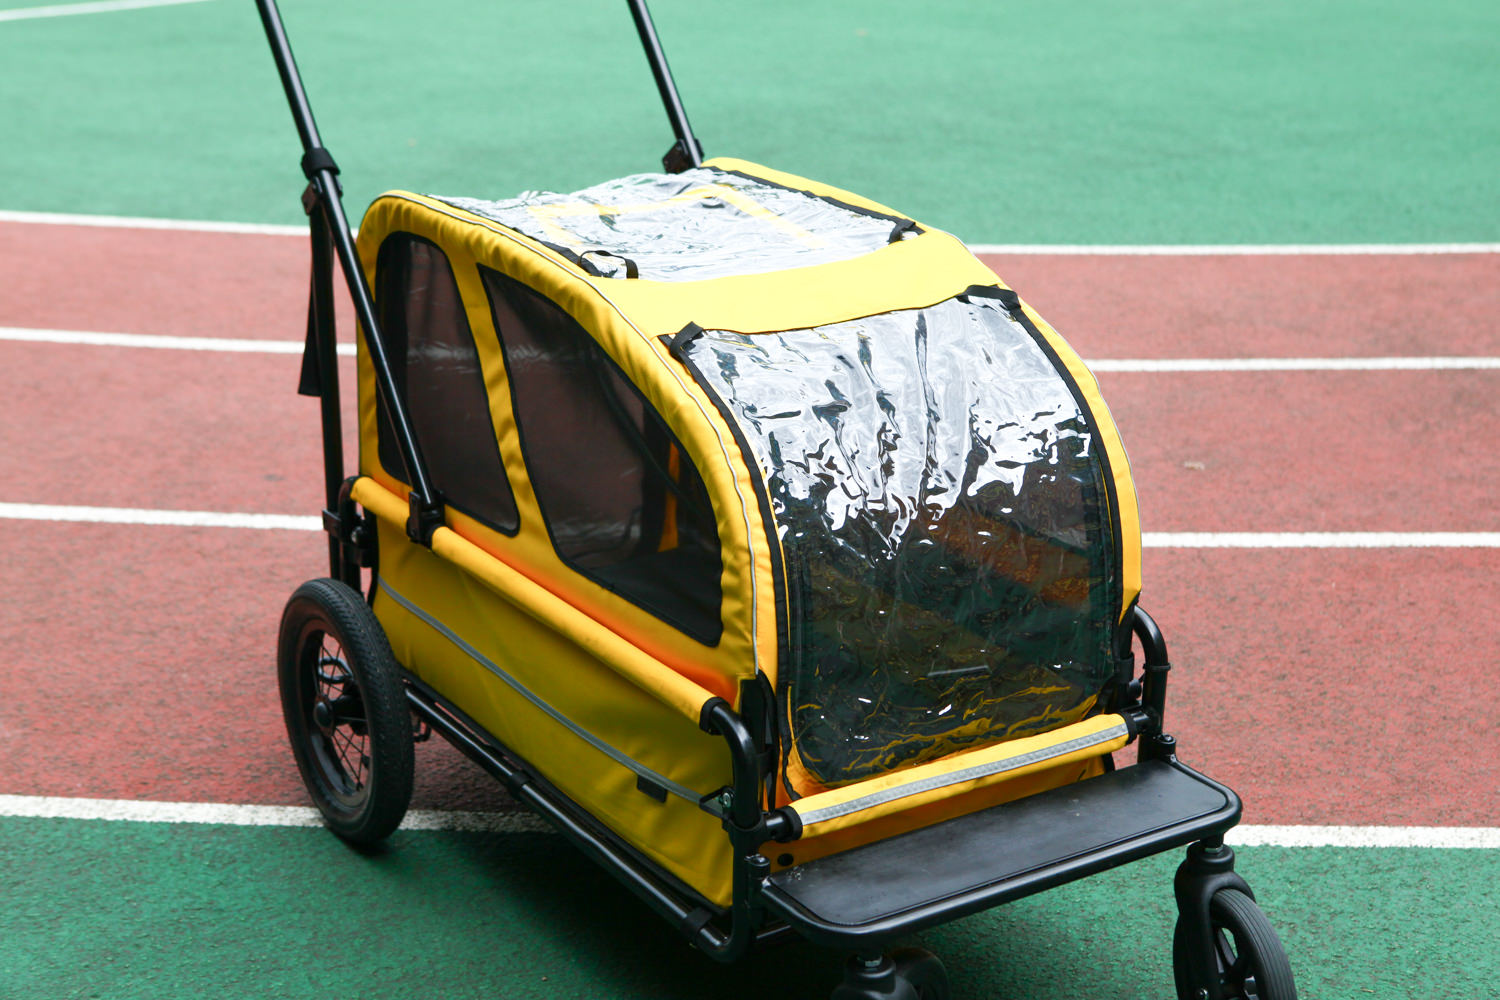 airbuggy 推車-39